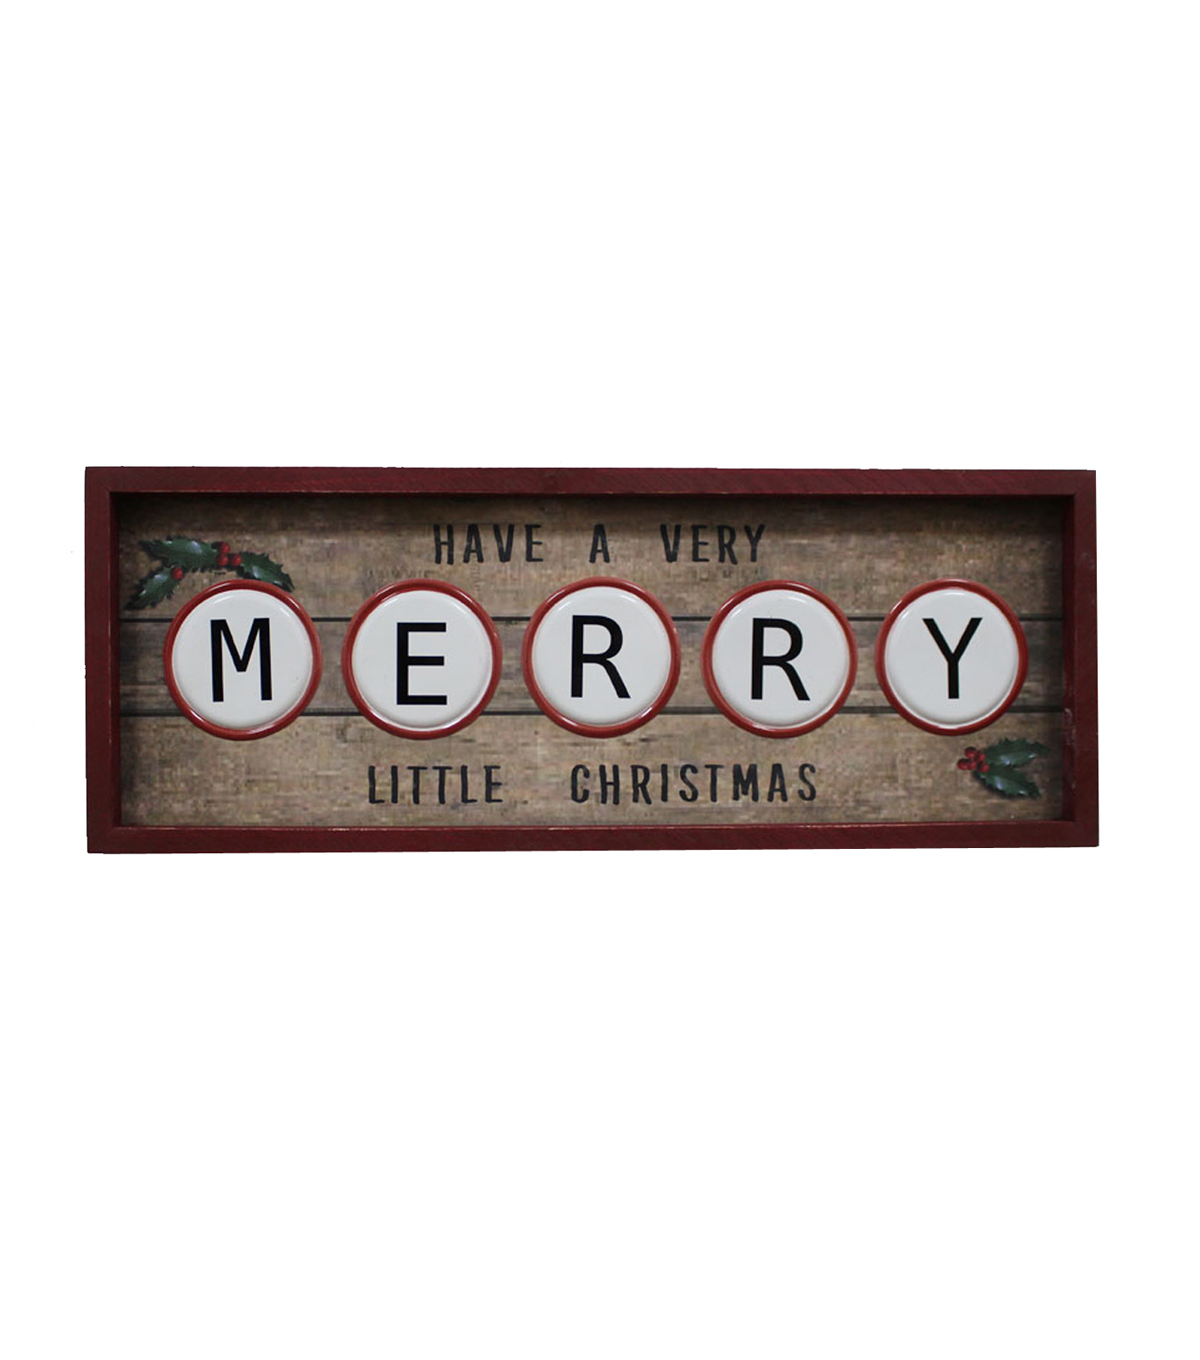 Maker\u0027s Holiday Christmas Wall Decor-Have a Very Merry Little Christmas